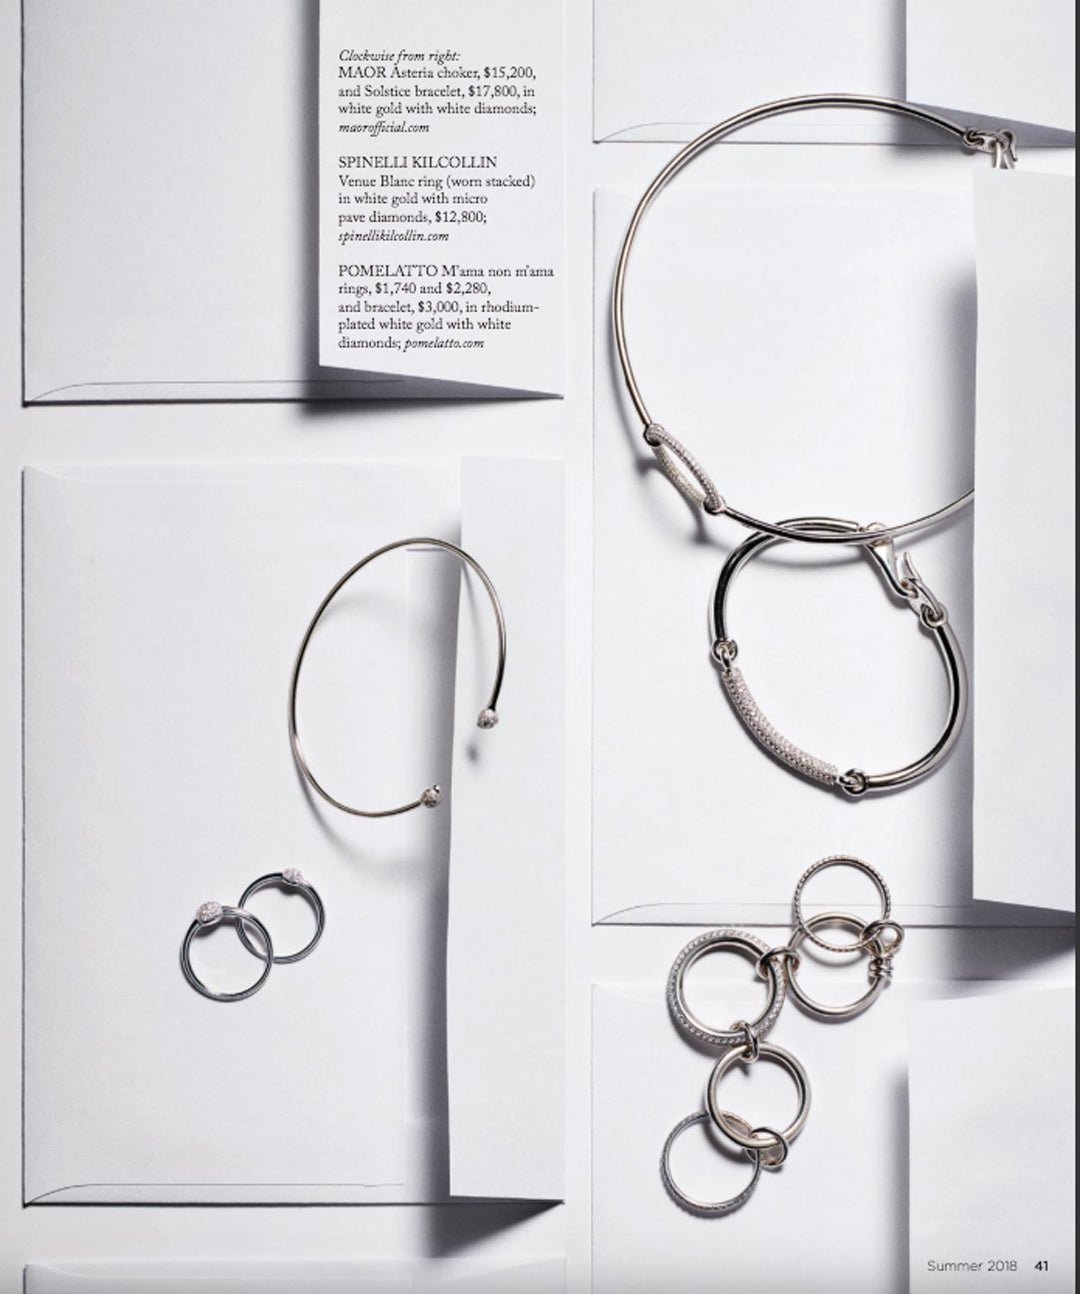 luxury magazine spinelli kilcollin venus blanc ring linked-rings jewelry